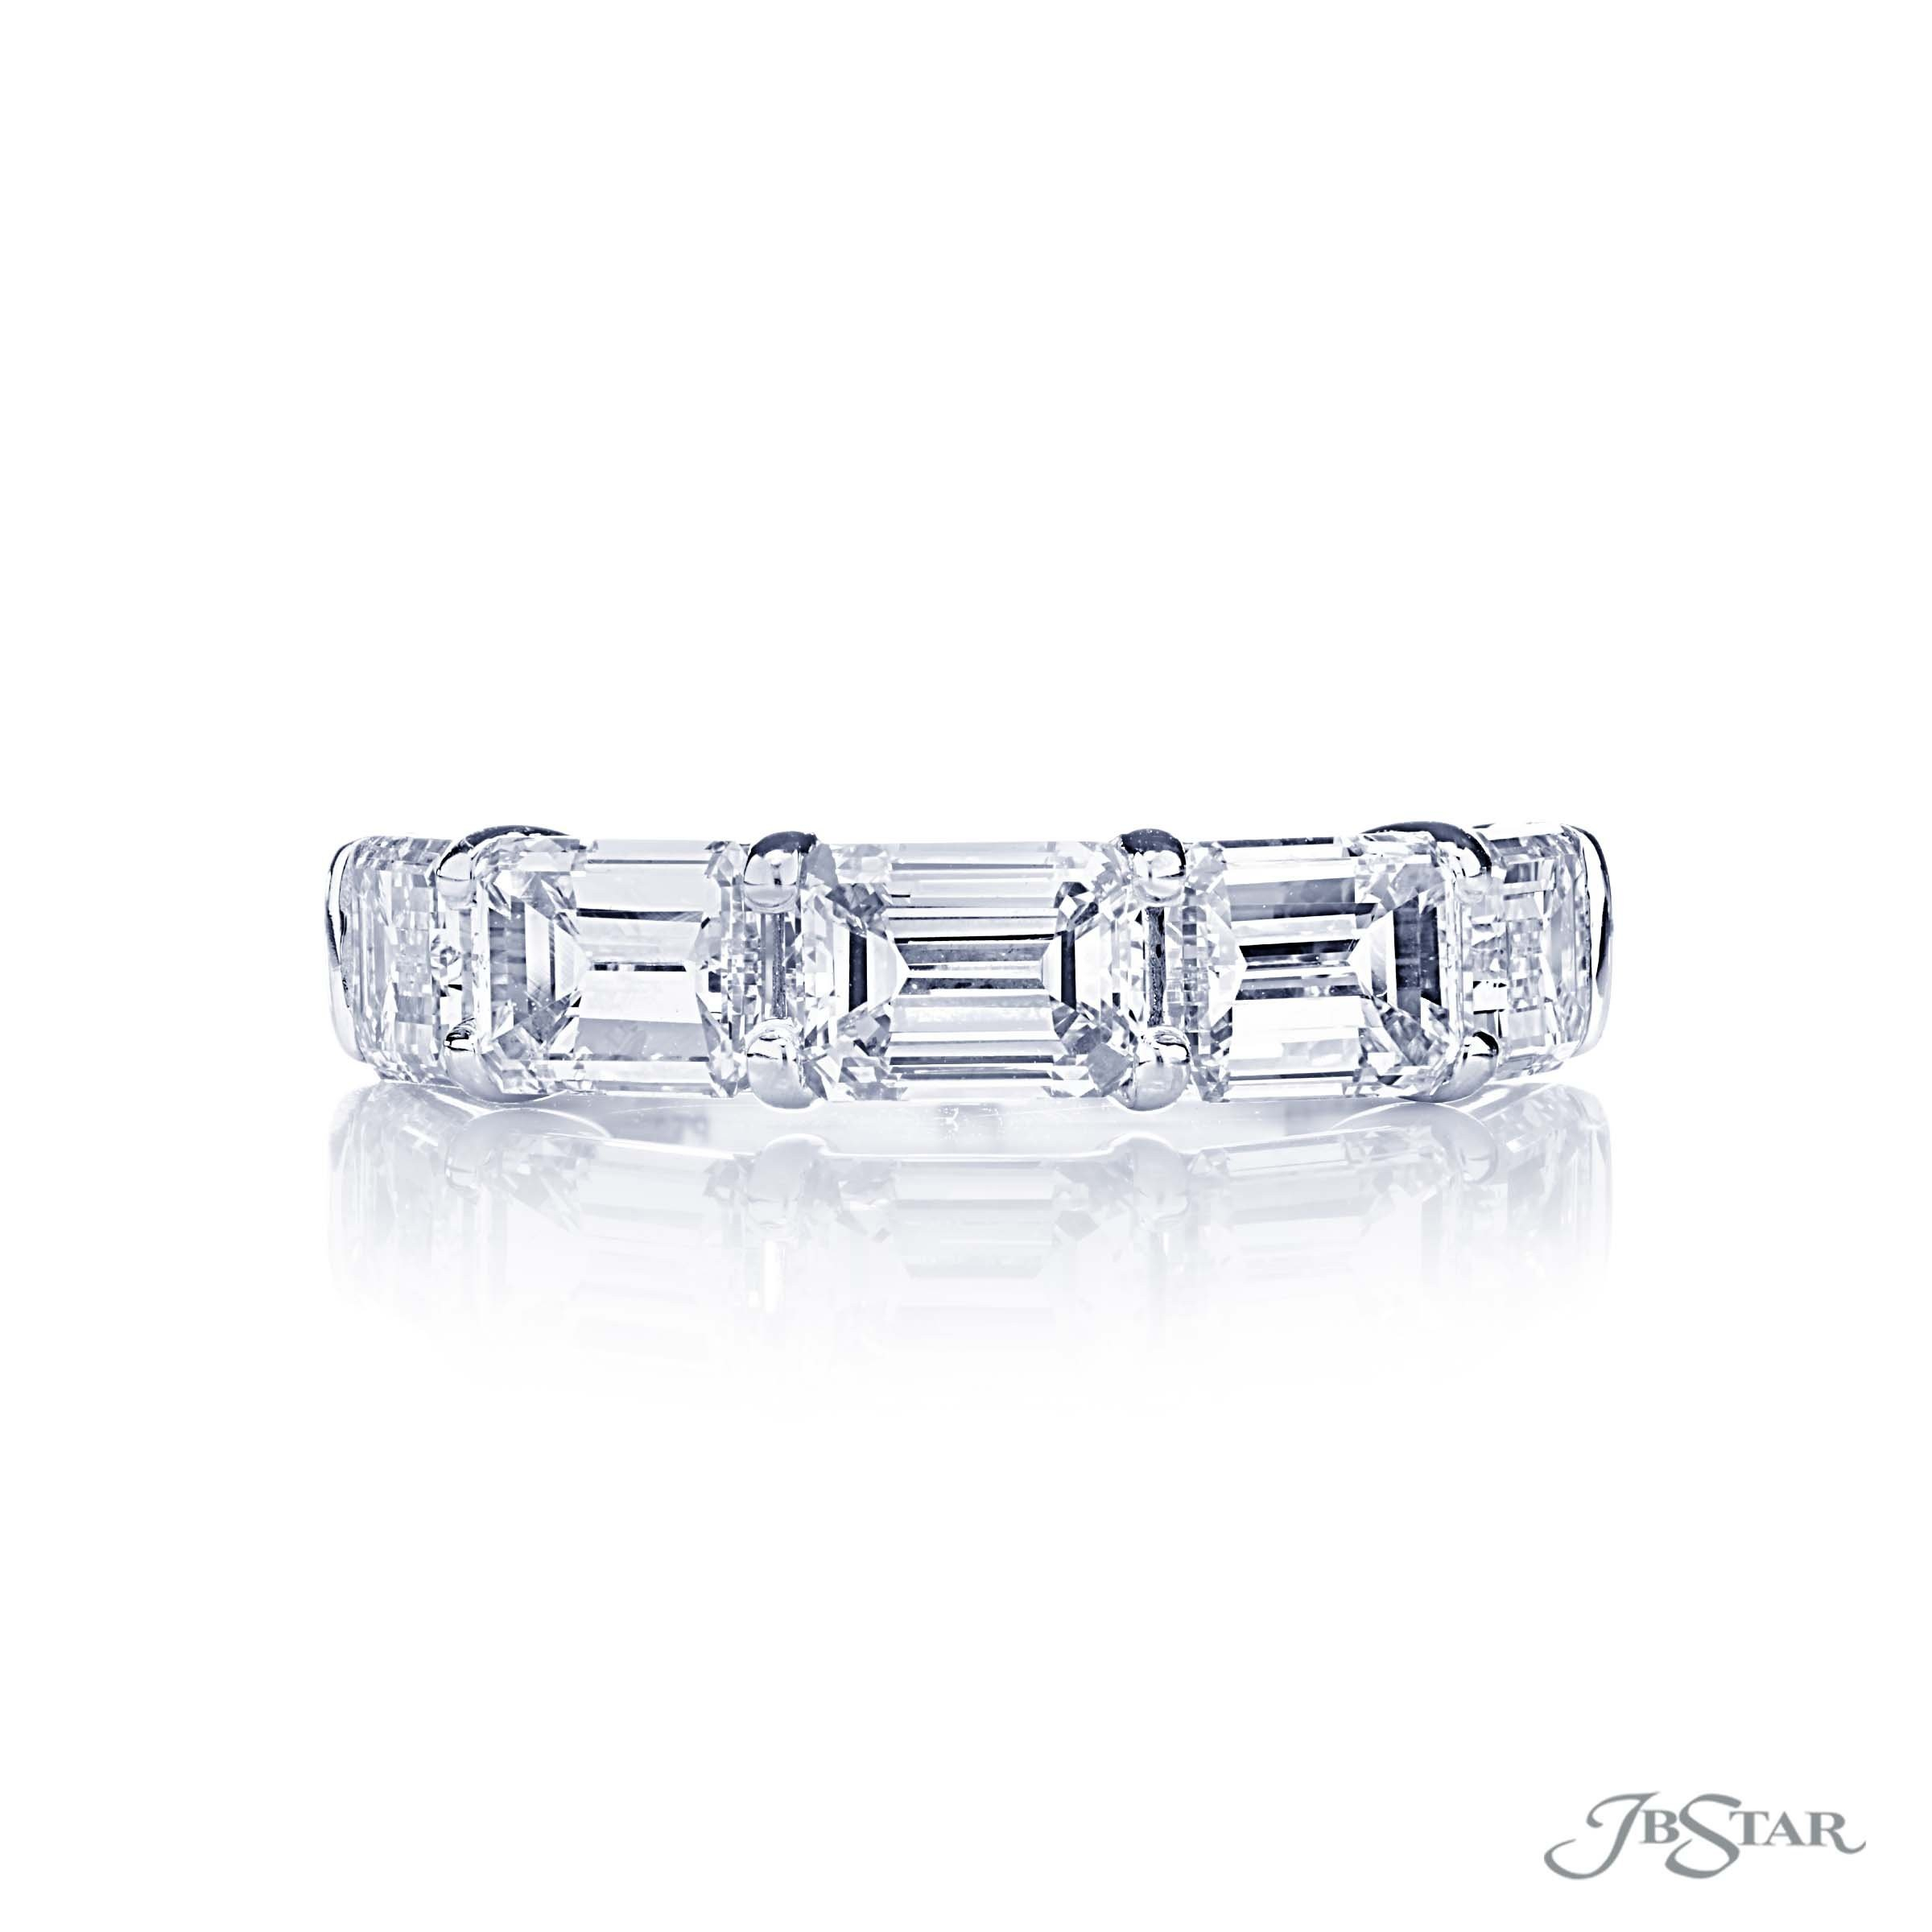 Beautiful Diamond Wedding Band Featuring 5 Emerald Cut Pertaining To Best And Newest Prong Set Emerald Cut Diamond Wedding Bands (View 4 of 25)